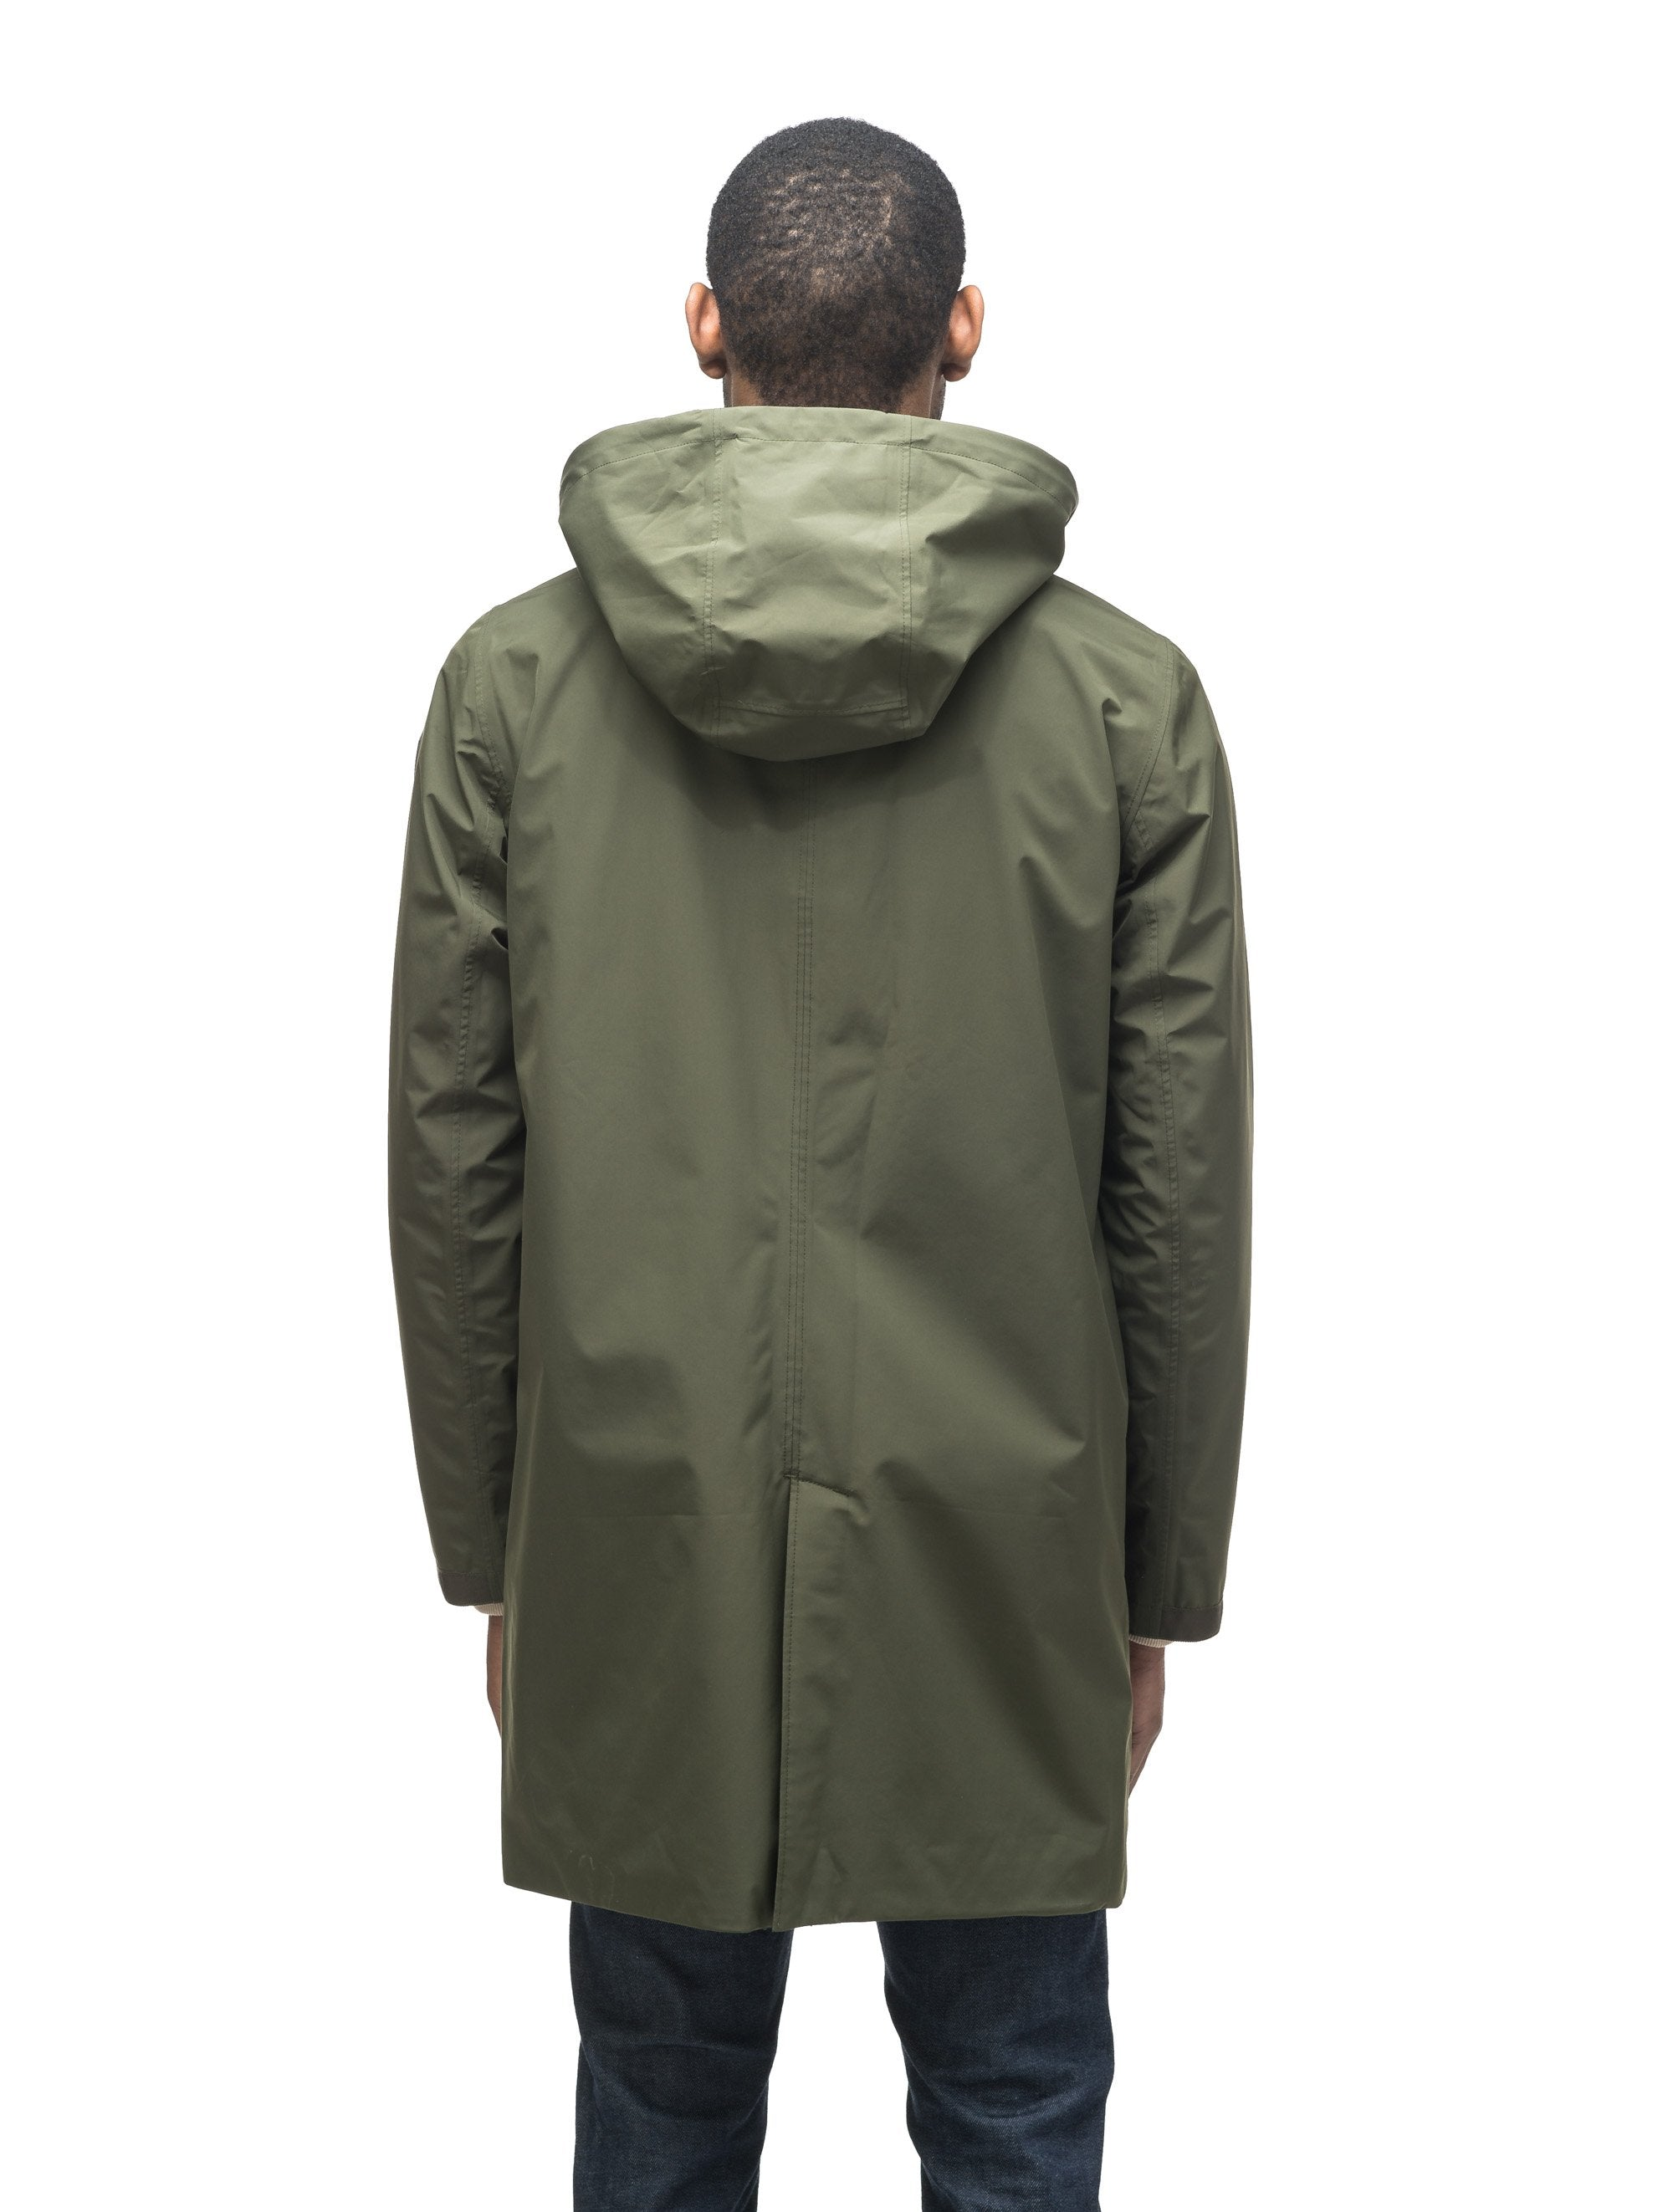 Men's knee length car coat in Fatigue, Marine, or Cork | color